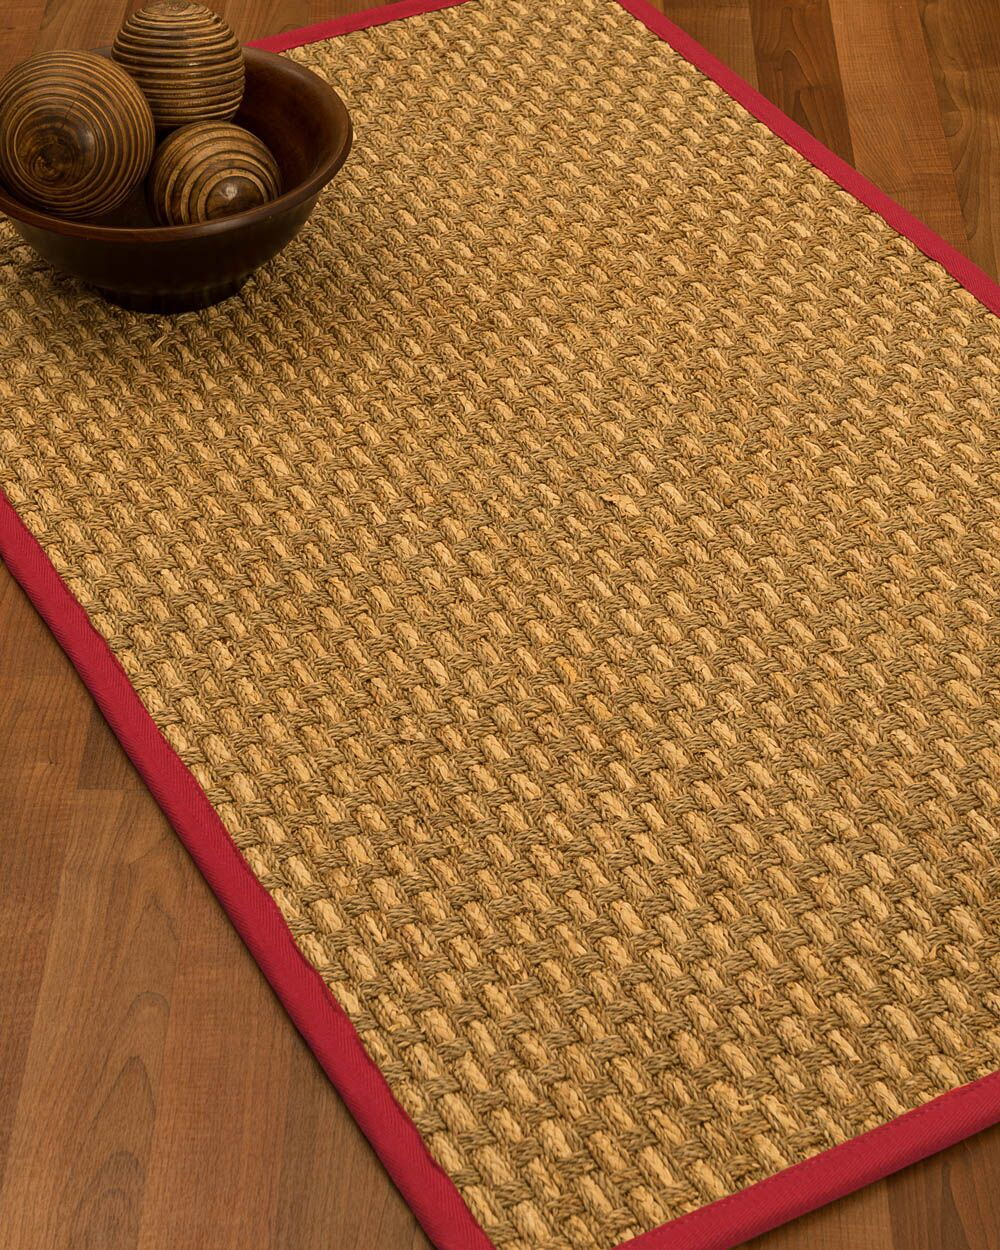 Castiglia Border Hand-Woven Beige/Red Area Rug Rug Size: Rectangle 6' x 9', Rug Pad Included: Yes